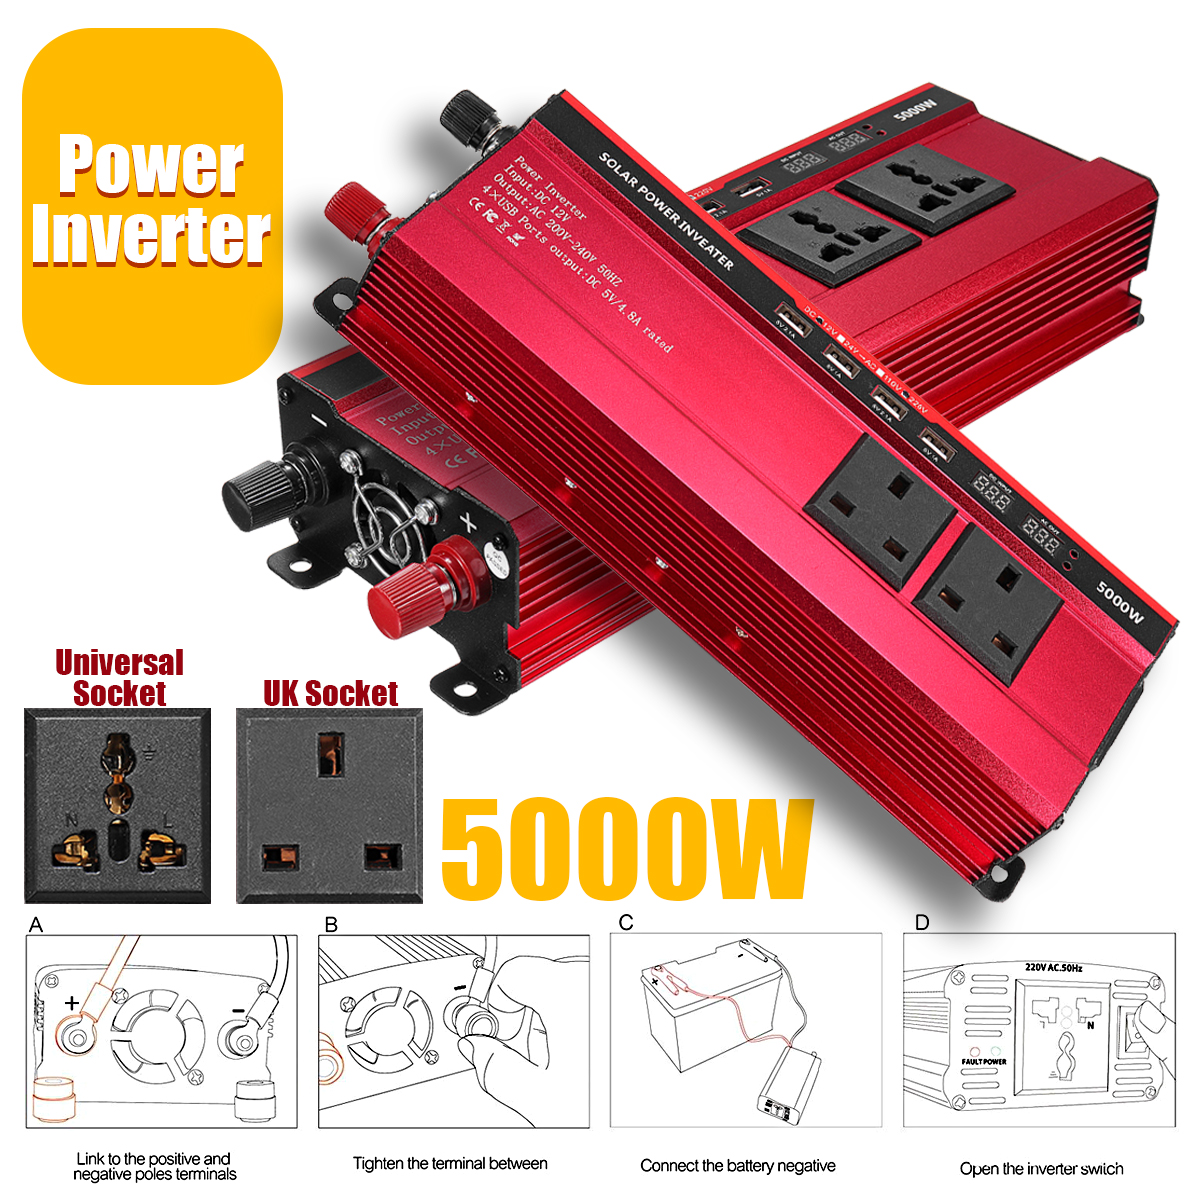 Red Solar Inverter 12V 220V 5000W P eak Voltage Transformer Converter DC 12V To AC 220V Car Inverter UK/Universal Plug LCDRed Solar Inverter 12V 220V 5000W P eak Voltage Transformer Converter DC 12V To AC 220V Car Inverter UK/Universal Plug LCD